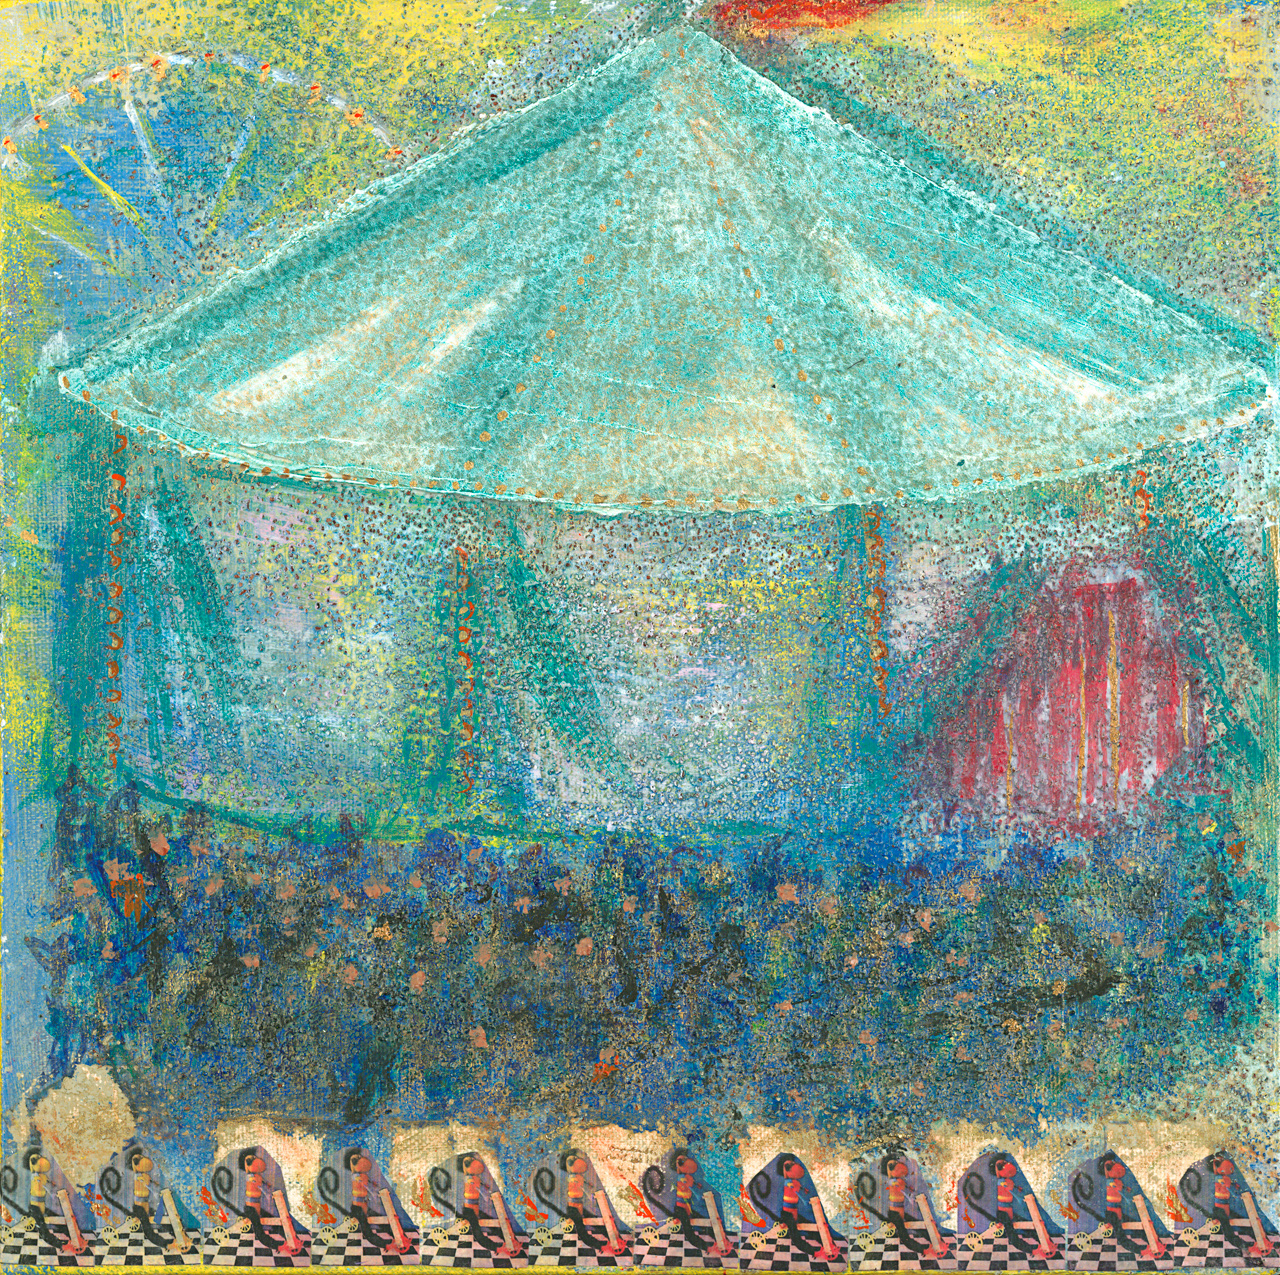 Los Monitos Always Rush to be First in Line at the Carrousel - (2012) - 12in x 12in - Mixed Media on Canvas